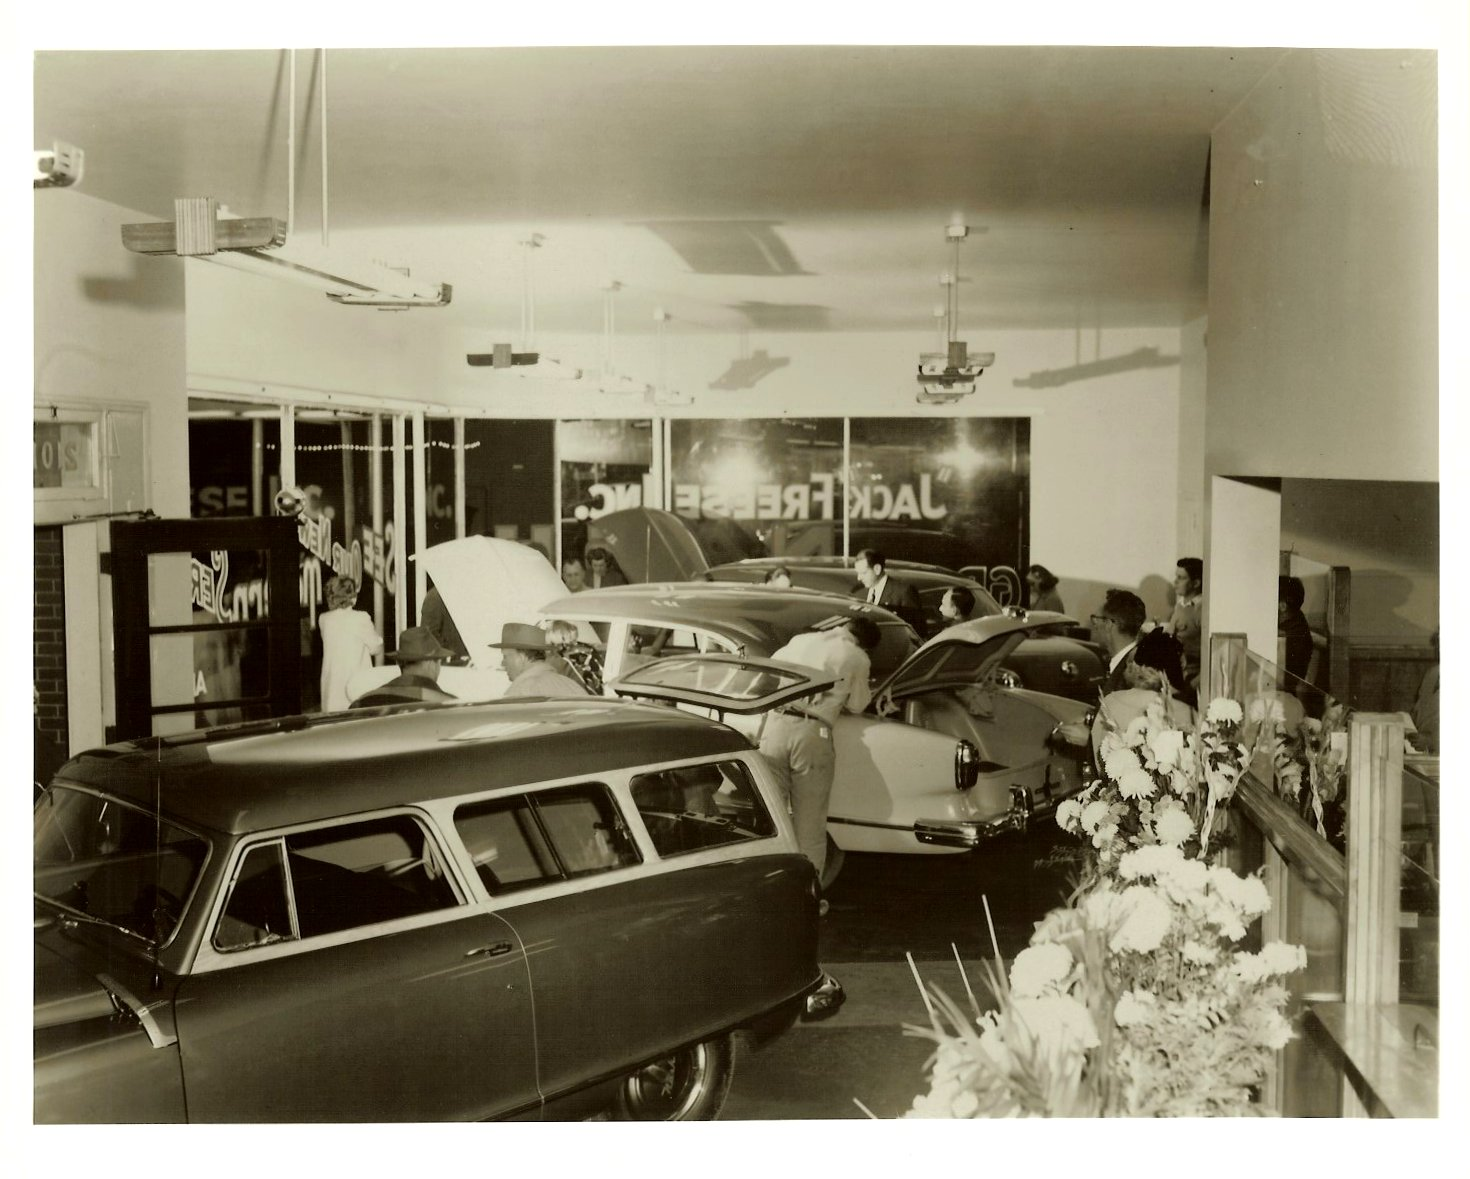 Jack Freese Inc. A NASH automobile dealership GRAND OPENING Sept 25-26, 1952 From a 10″x8″ Black & White negative